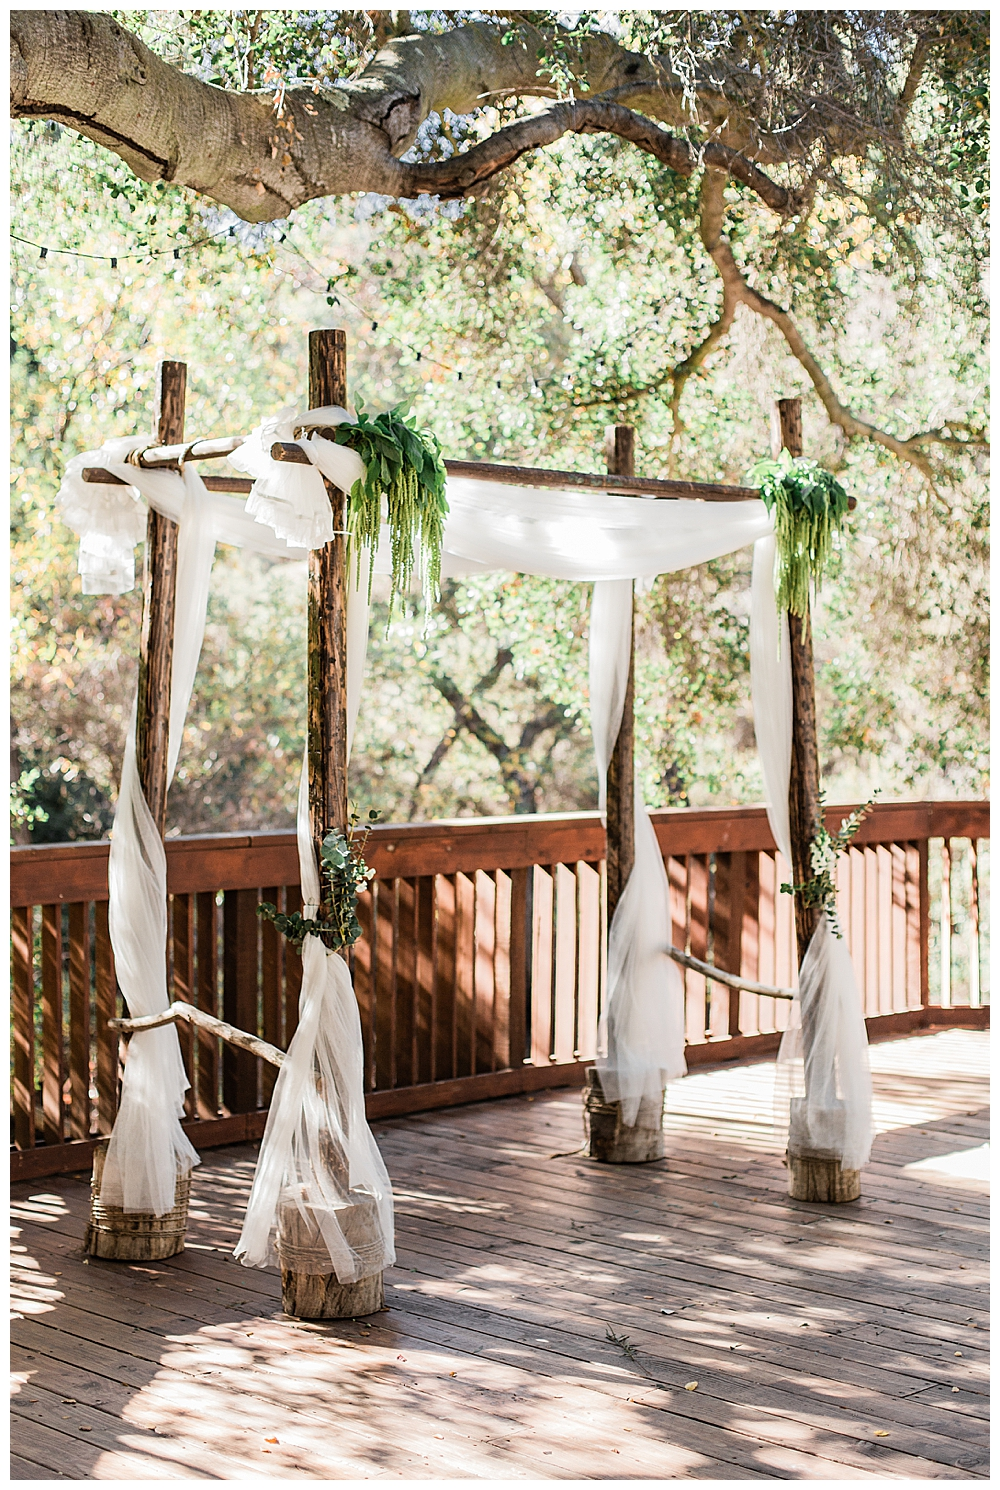 altar-wedding-ceremony-decor